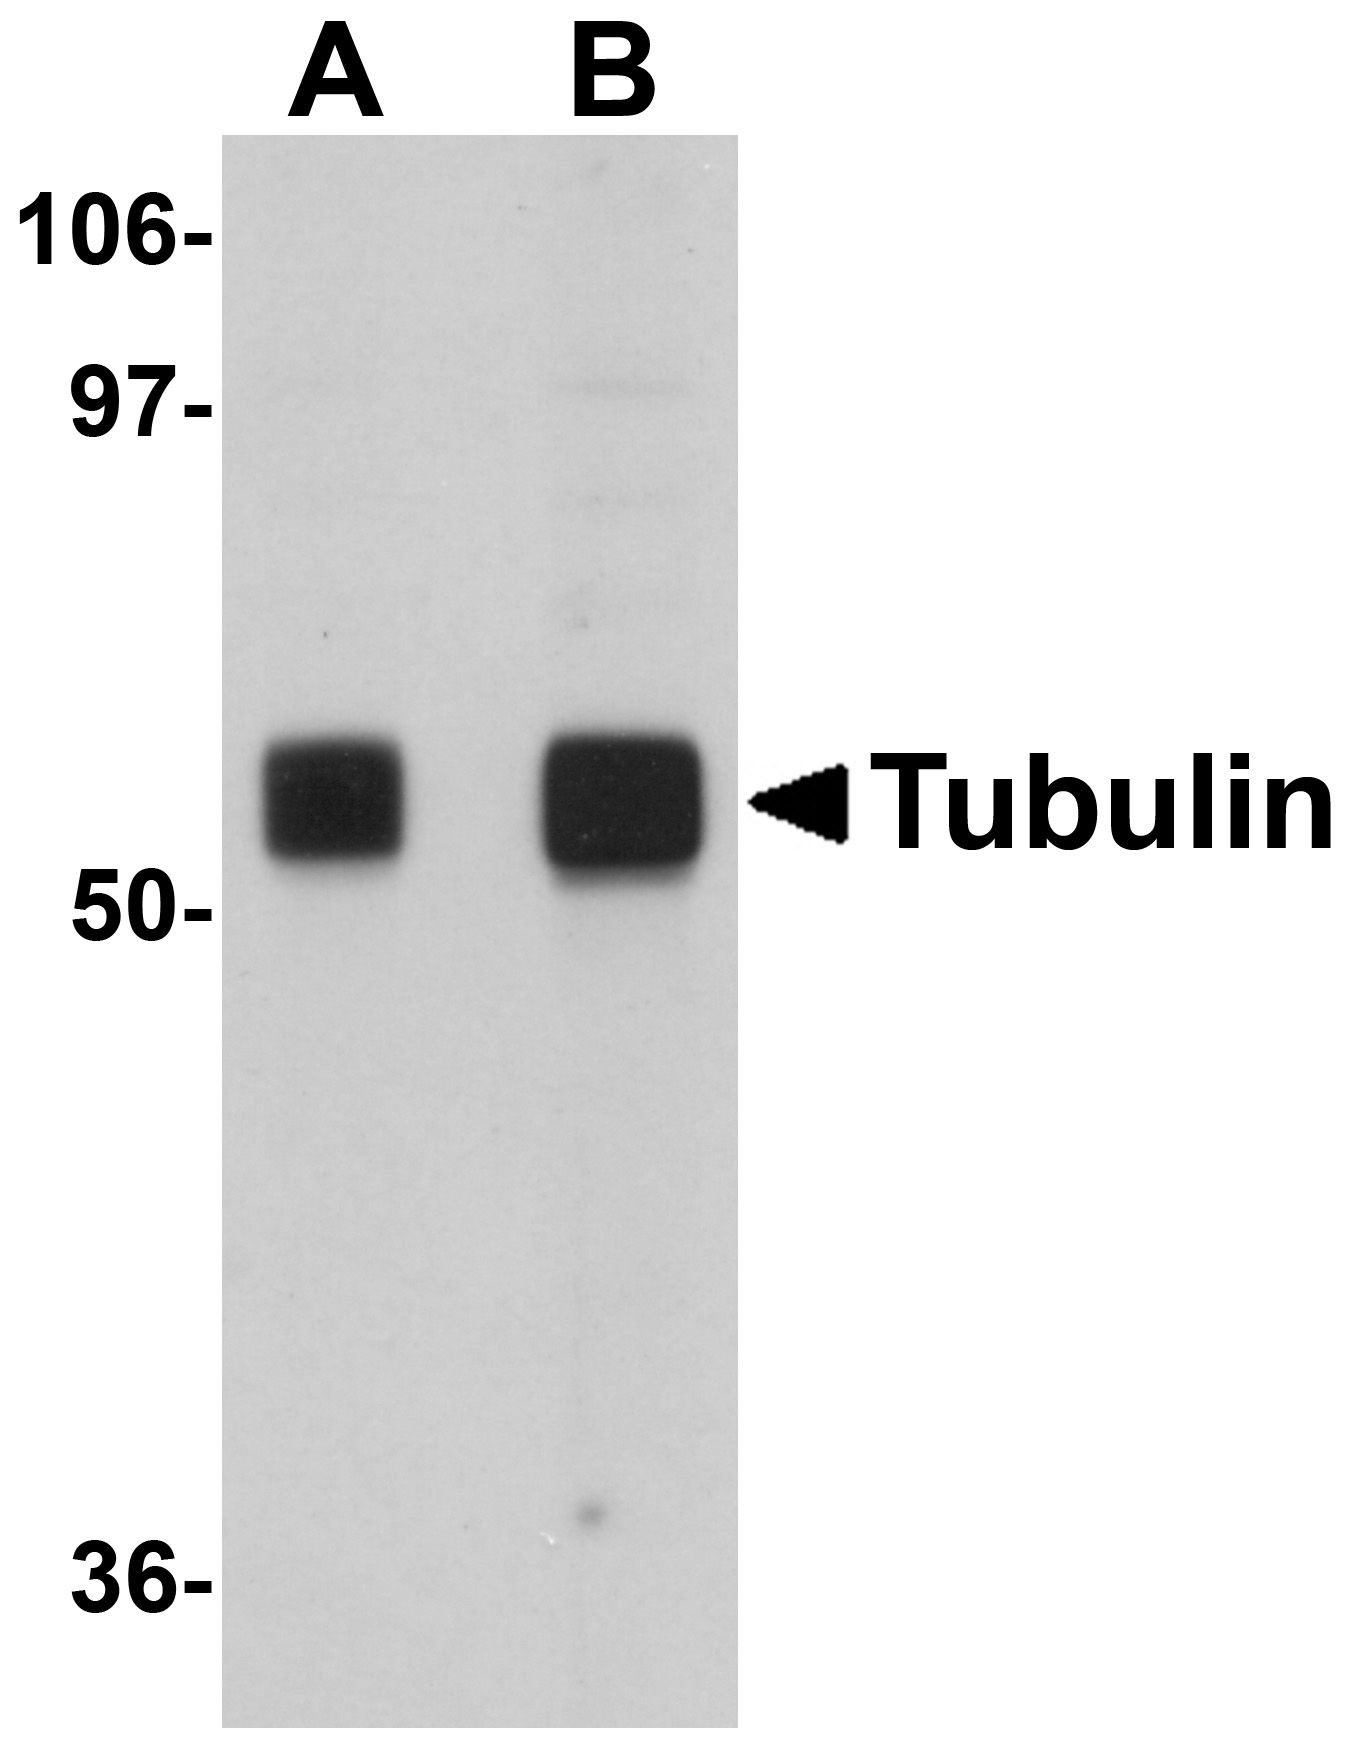 Alpha-tubulin Antibody (OAPB00857) in rat brain cells using Western Blot